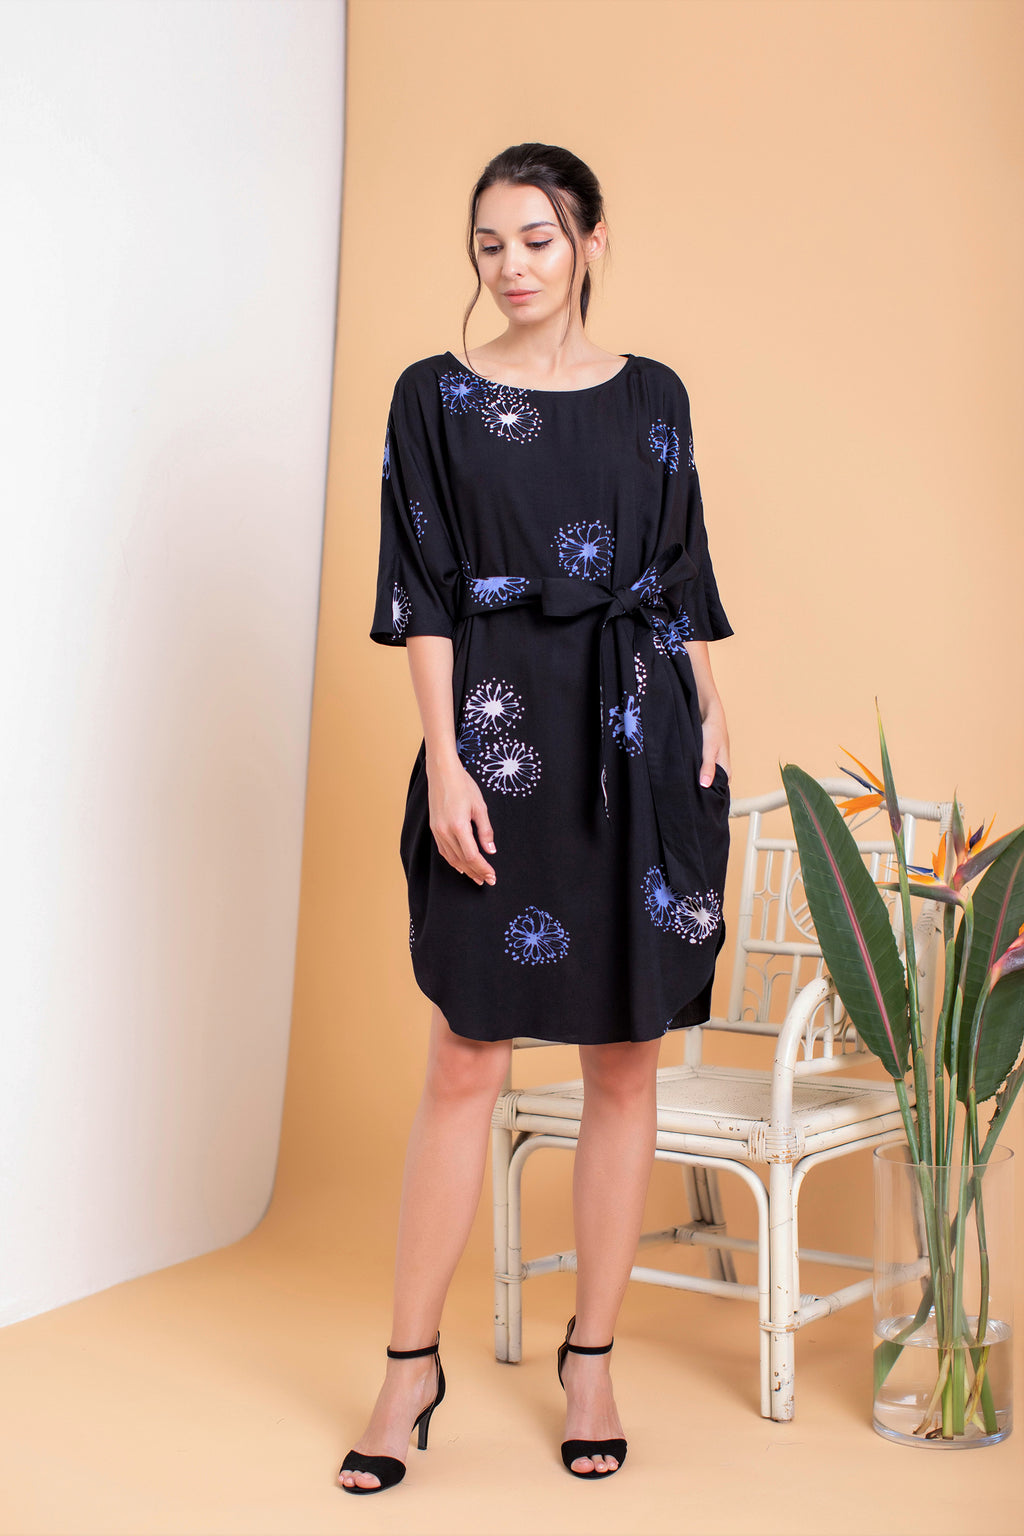 Ann Batwing Dress